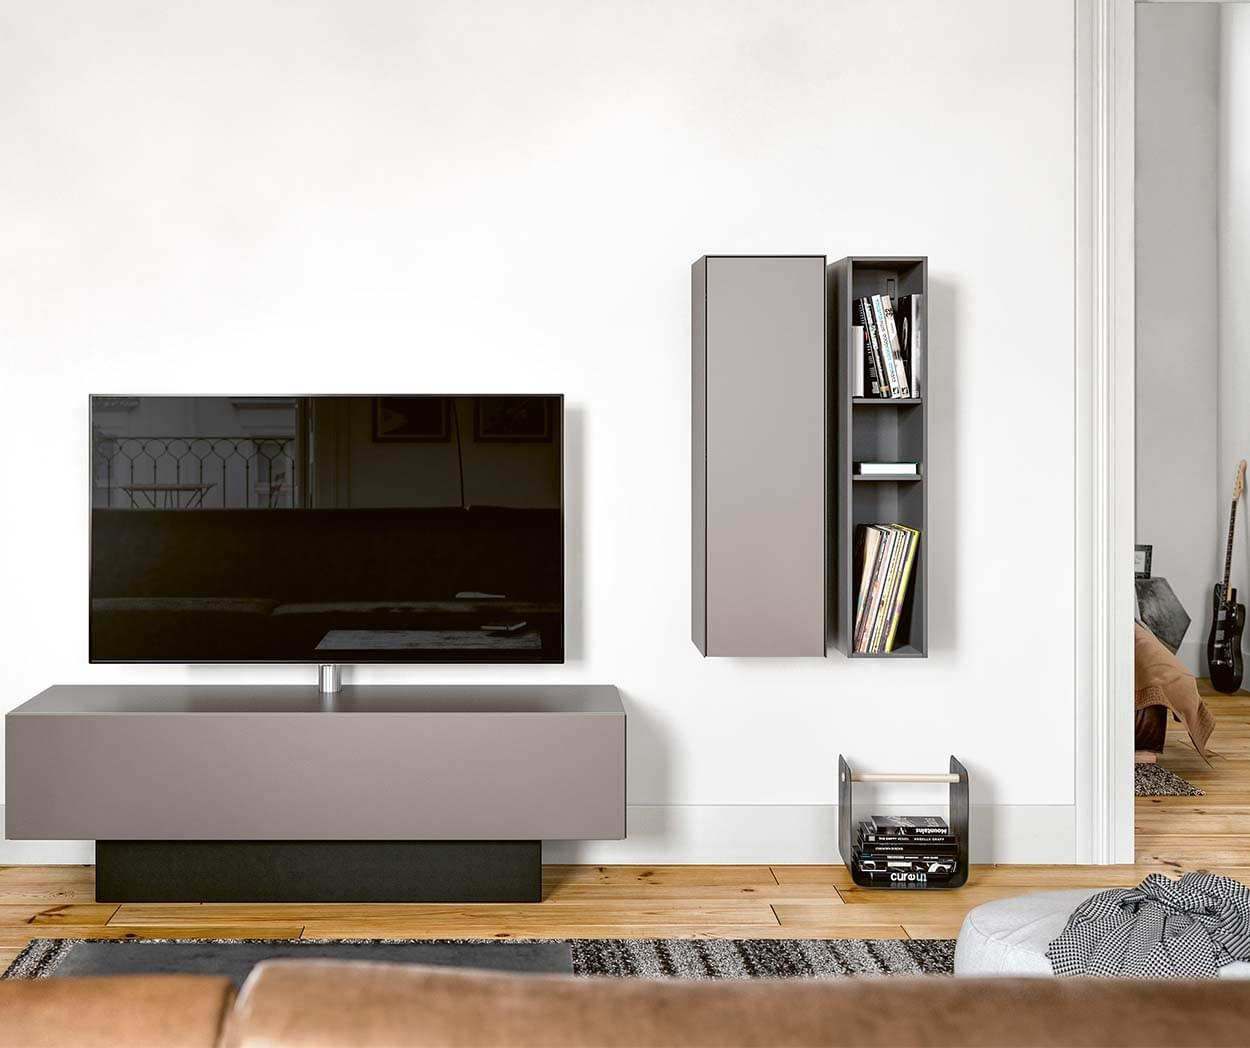 spectral brick br1501 wall cabinets